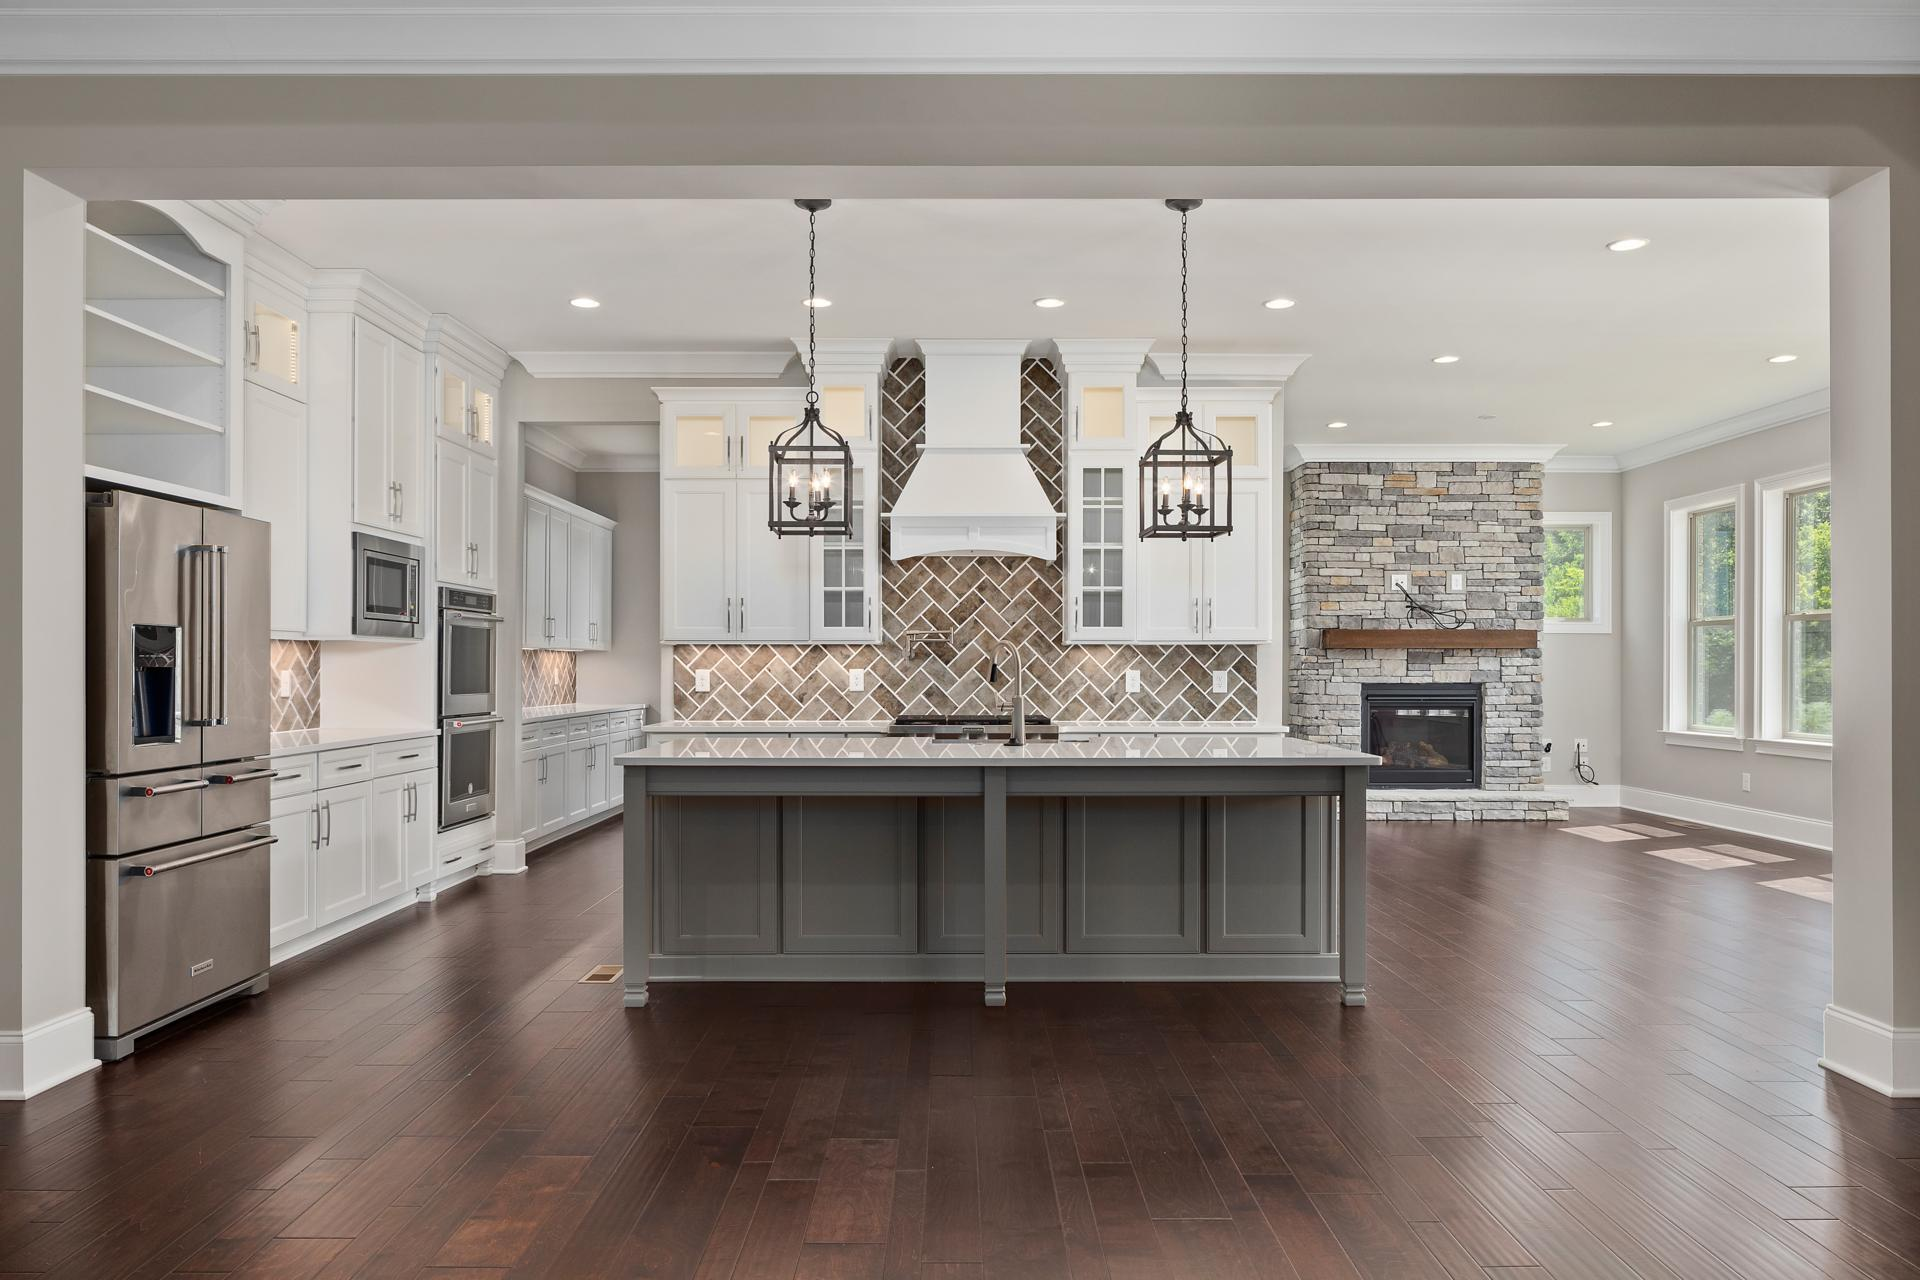 Kitchen featured in the Dresden By Drees Homes in Nashville, TN